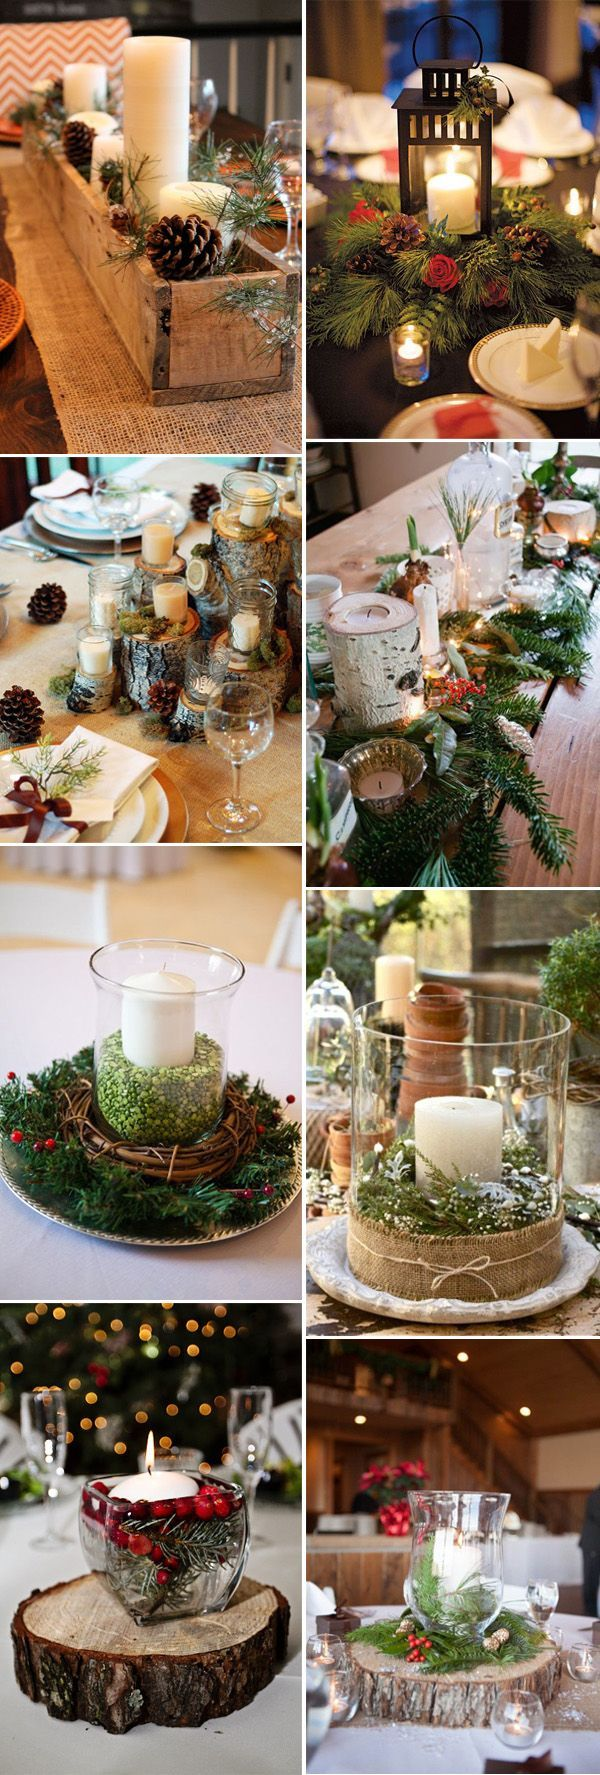 winter wonderland wedding table ideas%0A    Wonderful Ideas For A Cozy and Fancy Winter Wedding  Christmas  Centerpieces